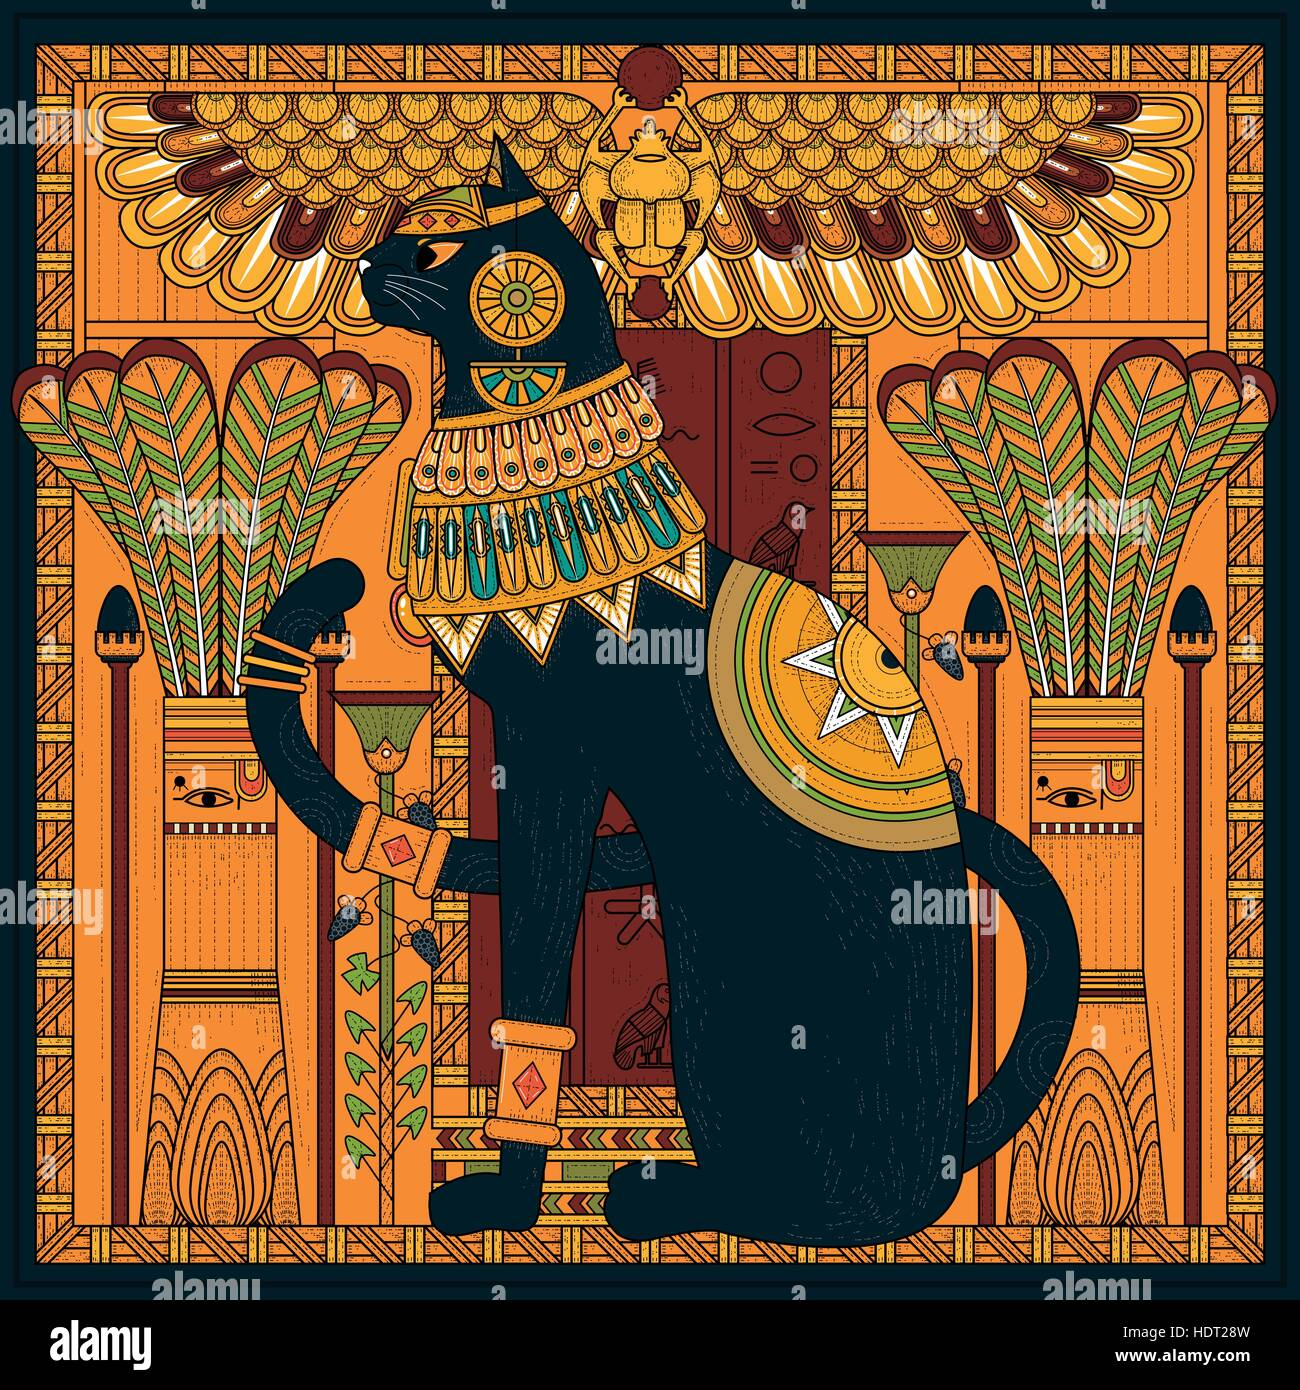 Elegant Cat Coloring Page Design In Egypt Style Stock Vector Art